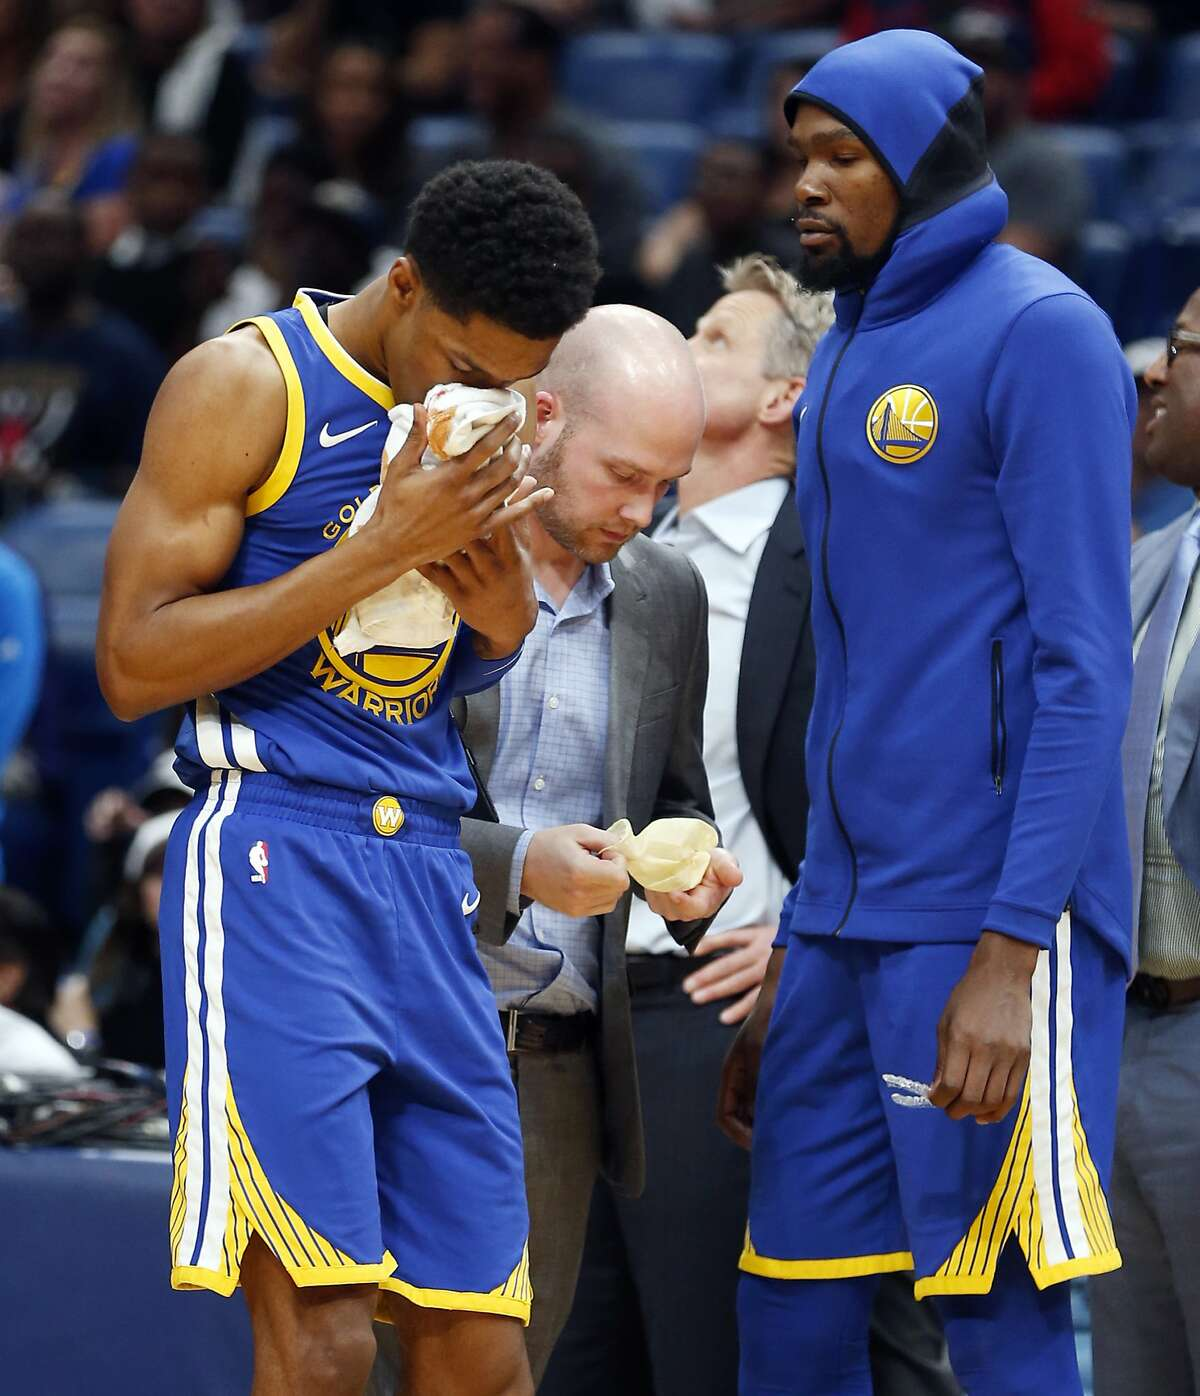 Golden State Warriors guard Patrick McCaw holds a towel to his nose after being hit in the first half of an NBA basketball game against the New Orleans Pelicans in New Orleans, Monday, Dec. 4, 2017. (AP Photo/Gerald Herbert)